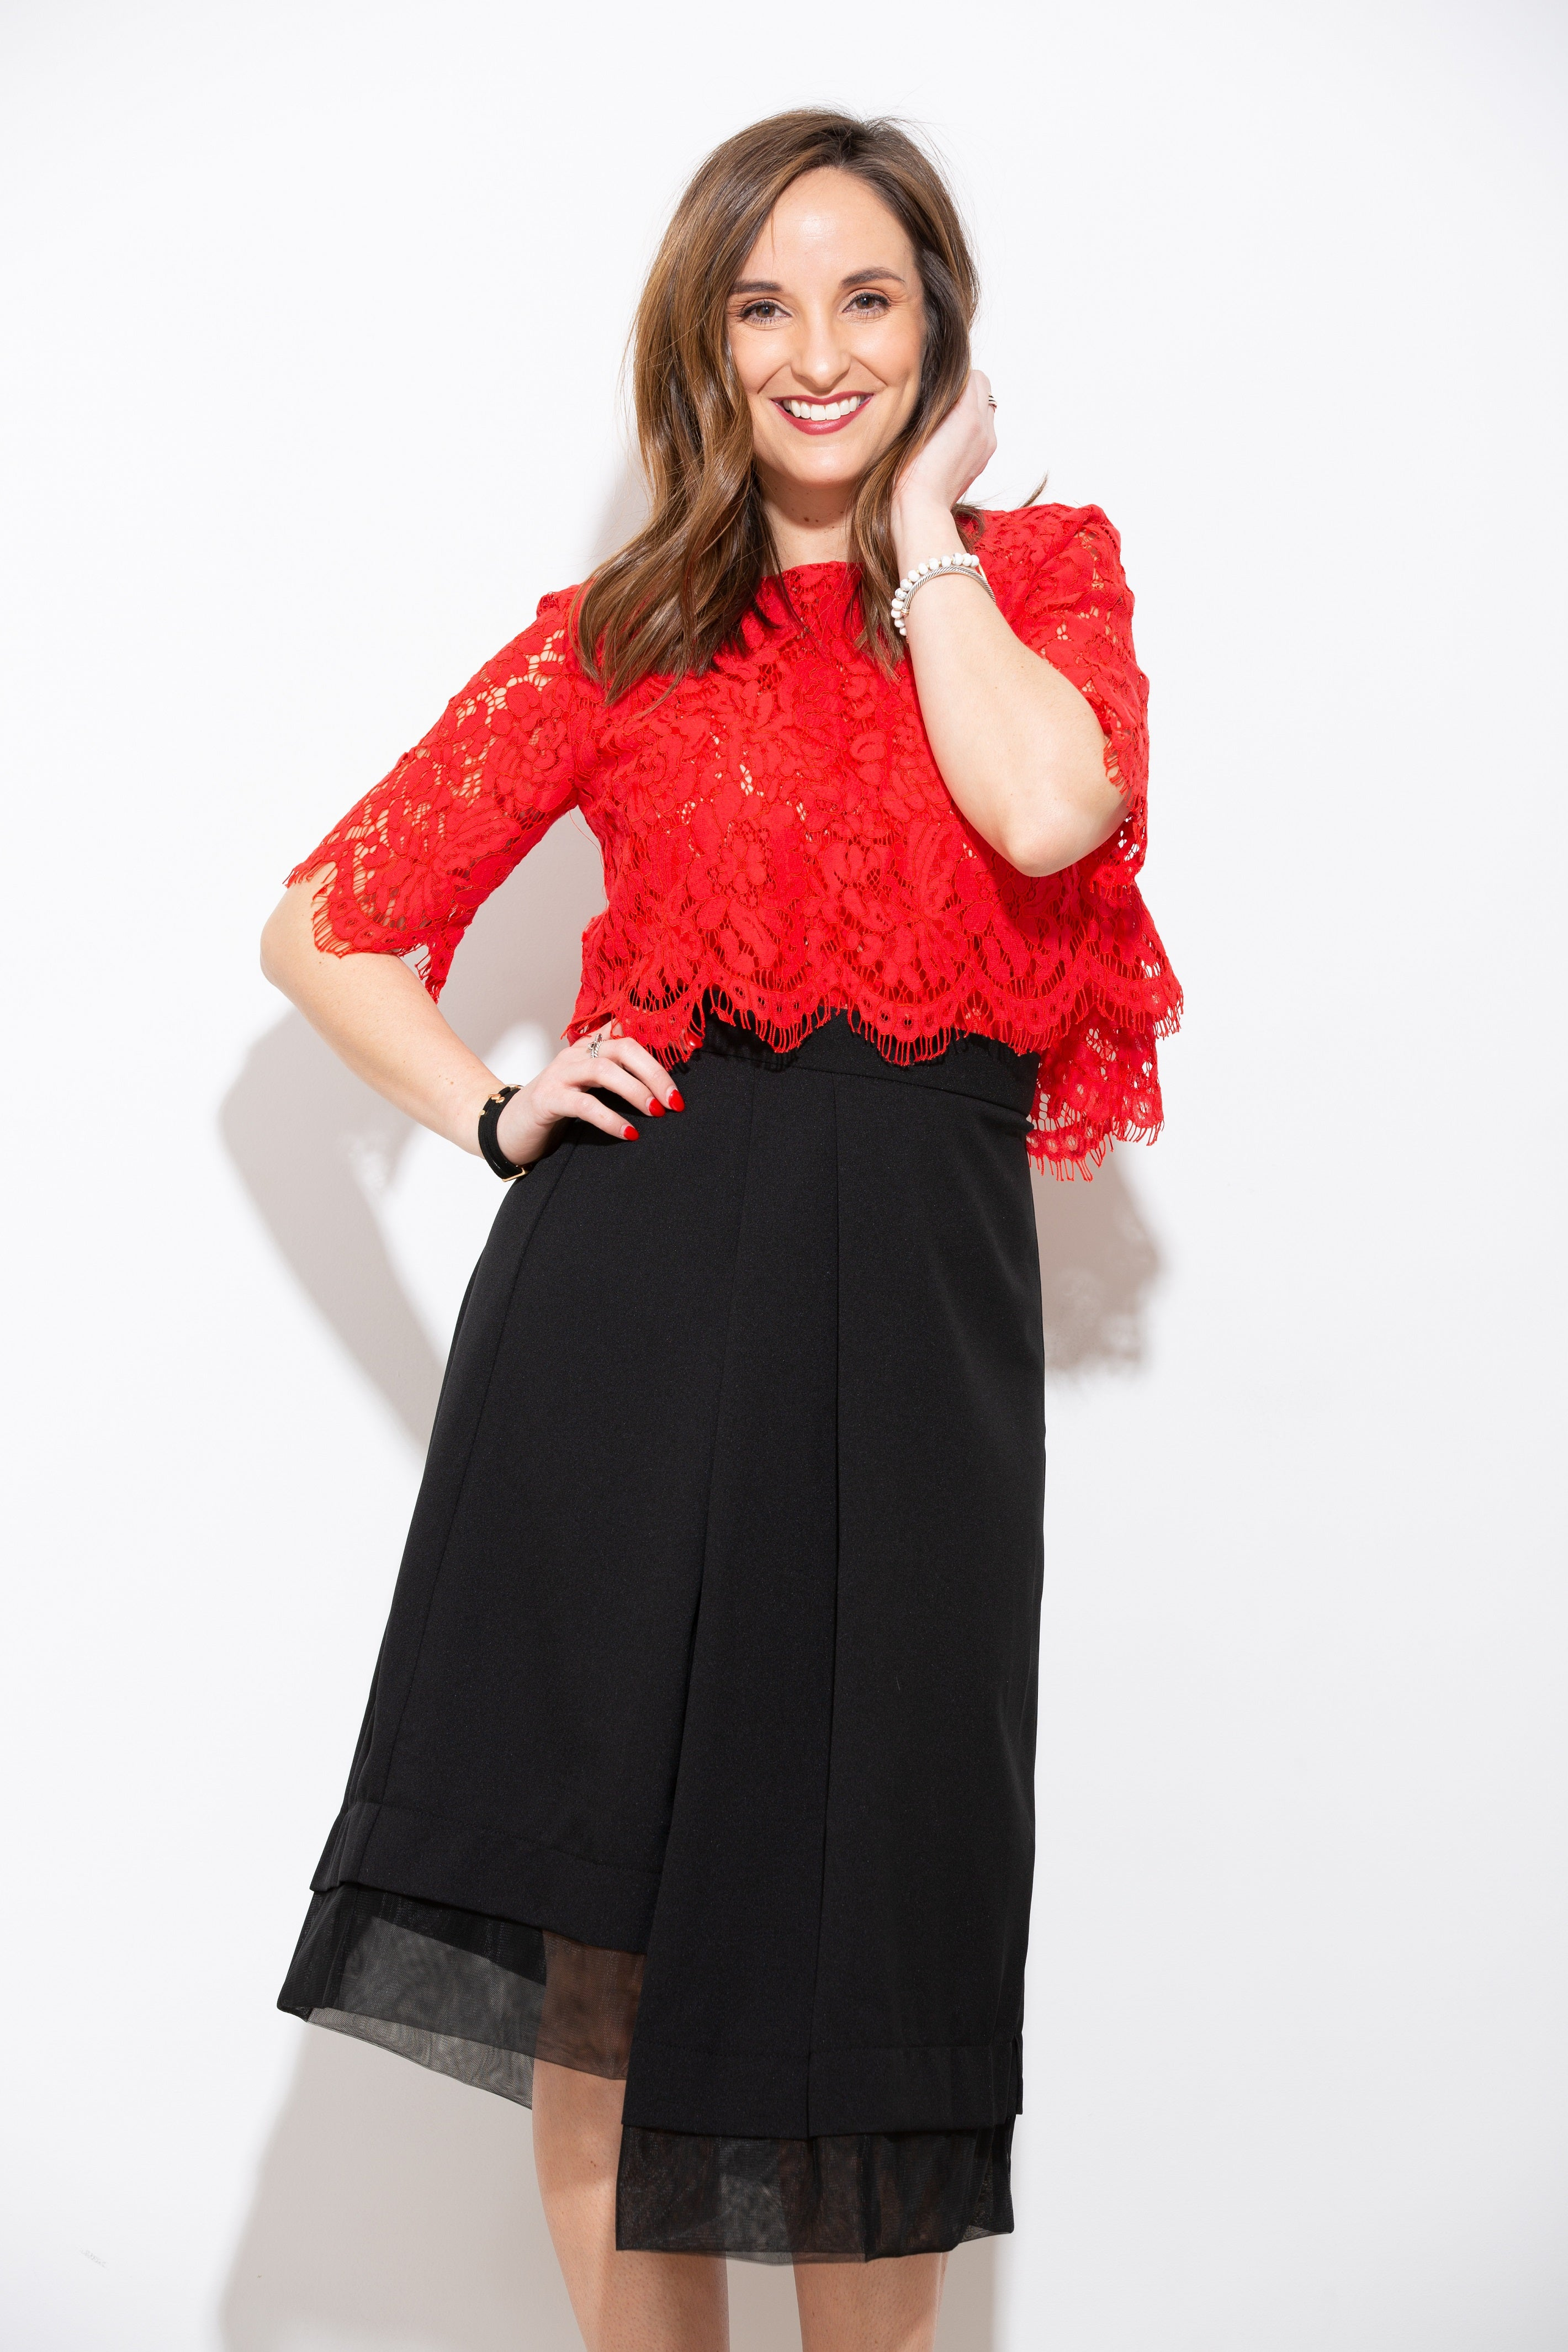 Love You Always Red Lace Top - impromptu boutique